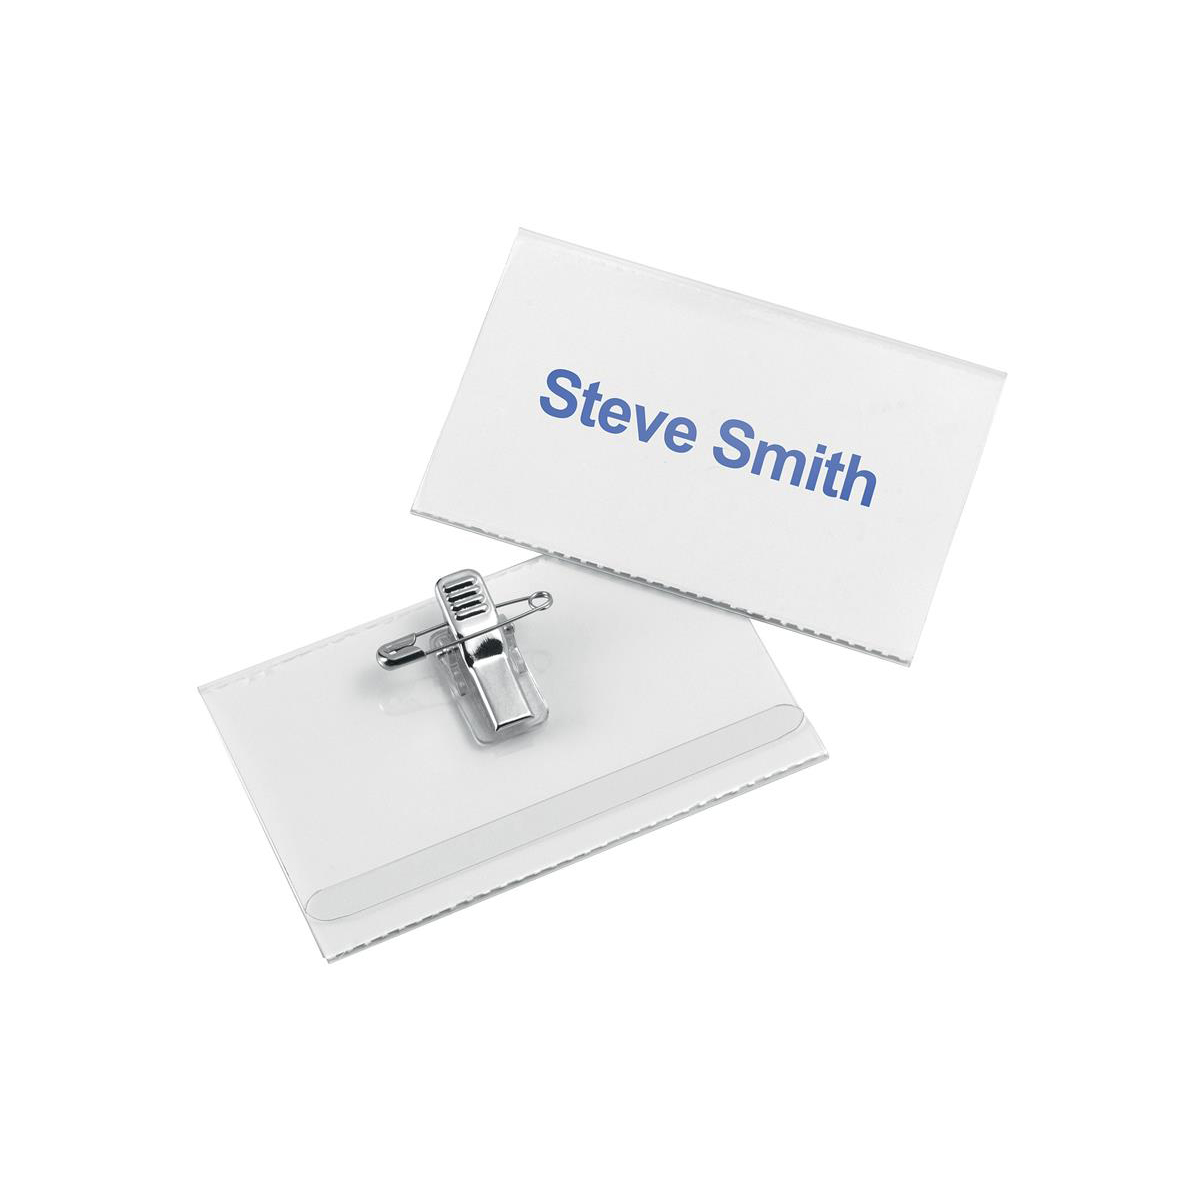 Badges or badge holders 5 Star Office Name Badge with Combi-Clip 54x90mm Pack 50